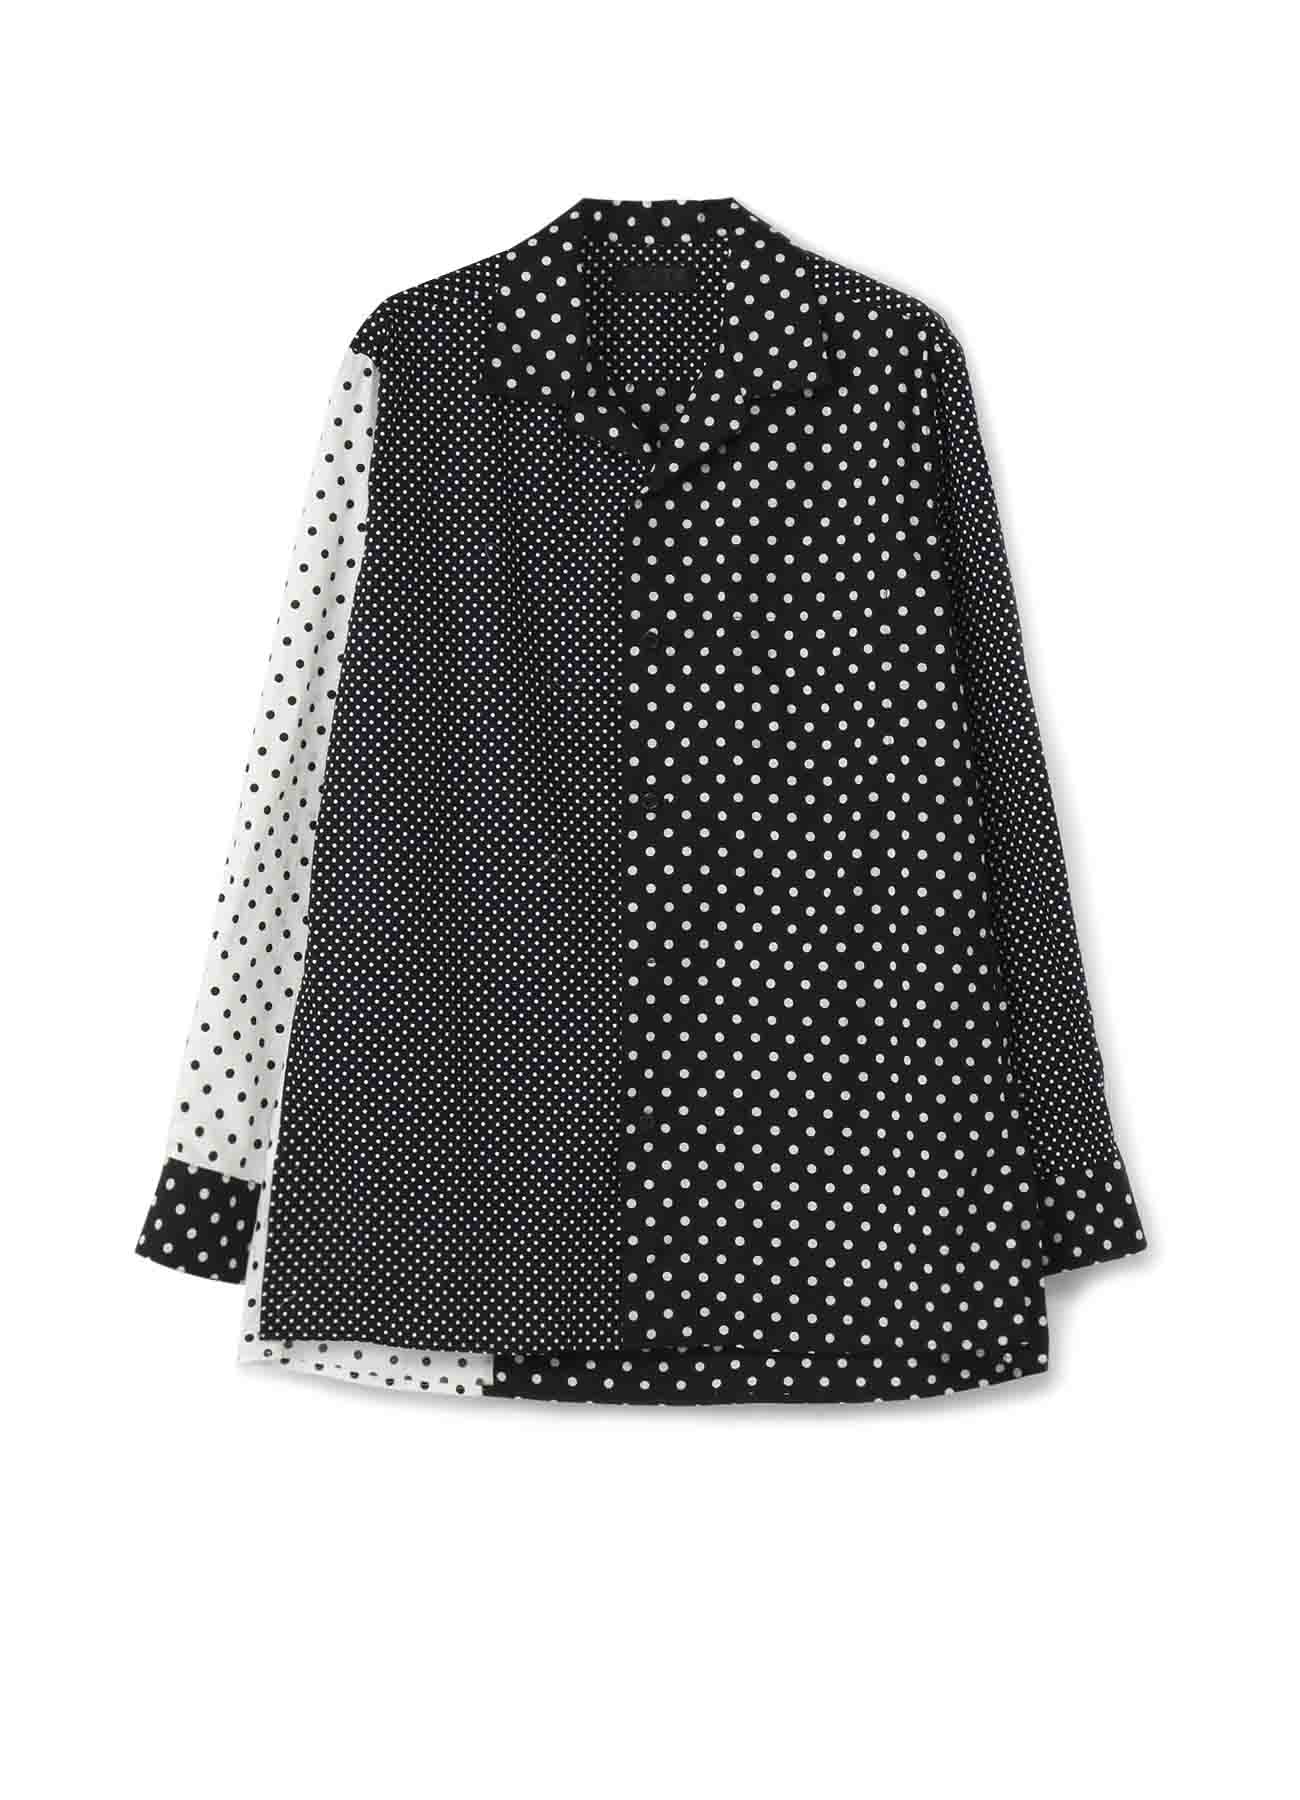 Dot Crazy Panel Open Collar Shirt